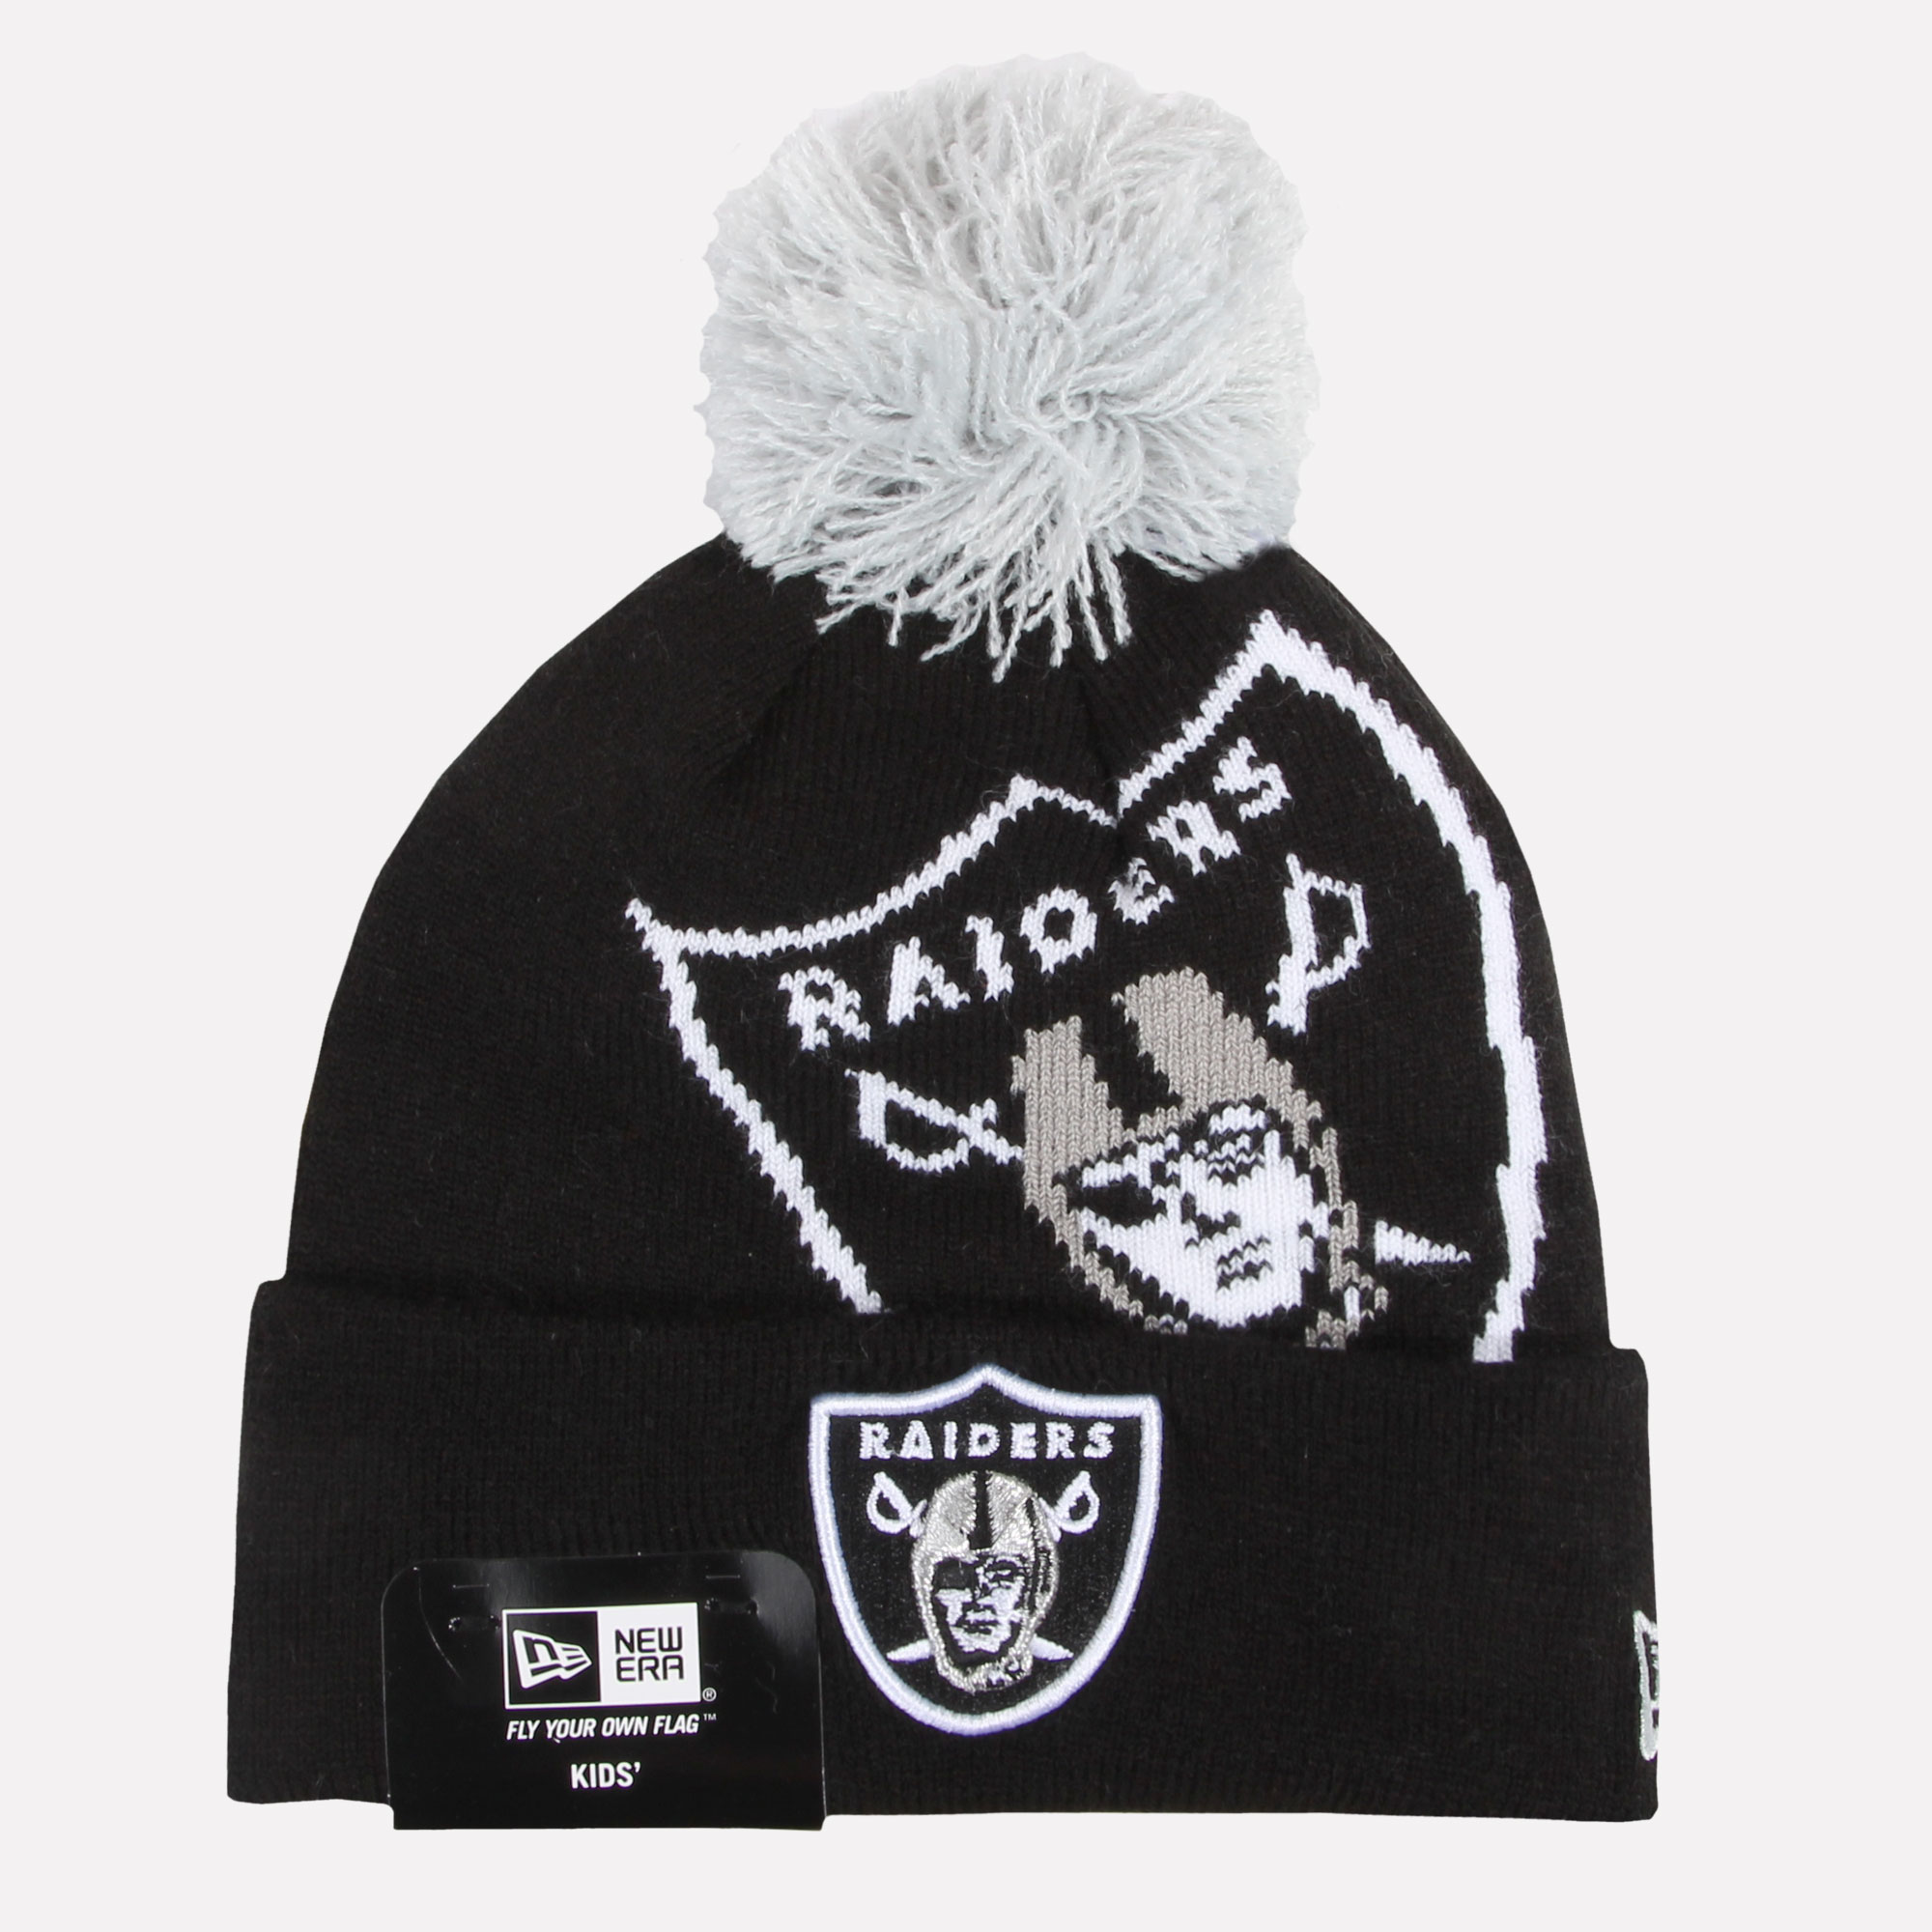 New Era Children Beanie Winter Hat Cap Boys Girls Yankees Raiders ... abb0ea7188d